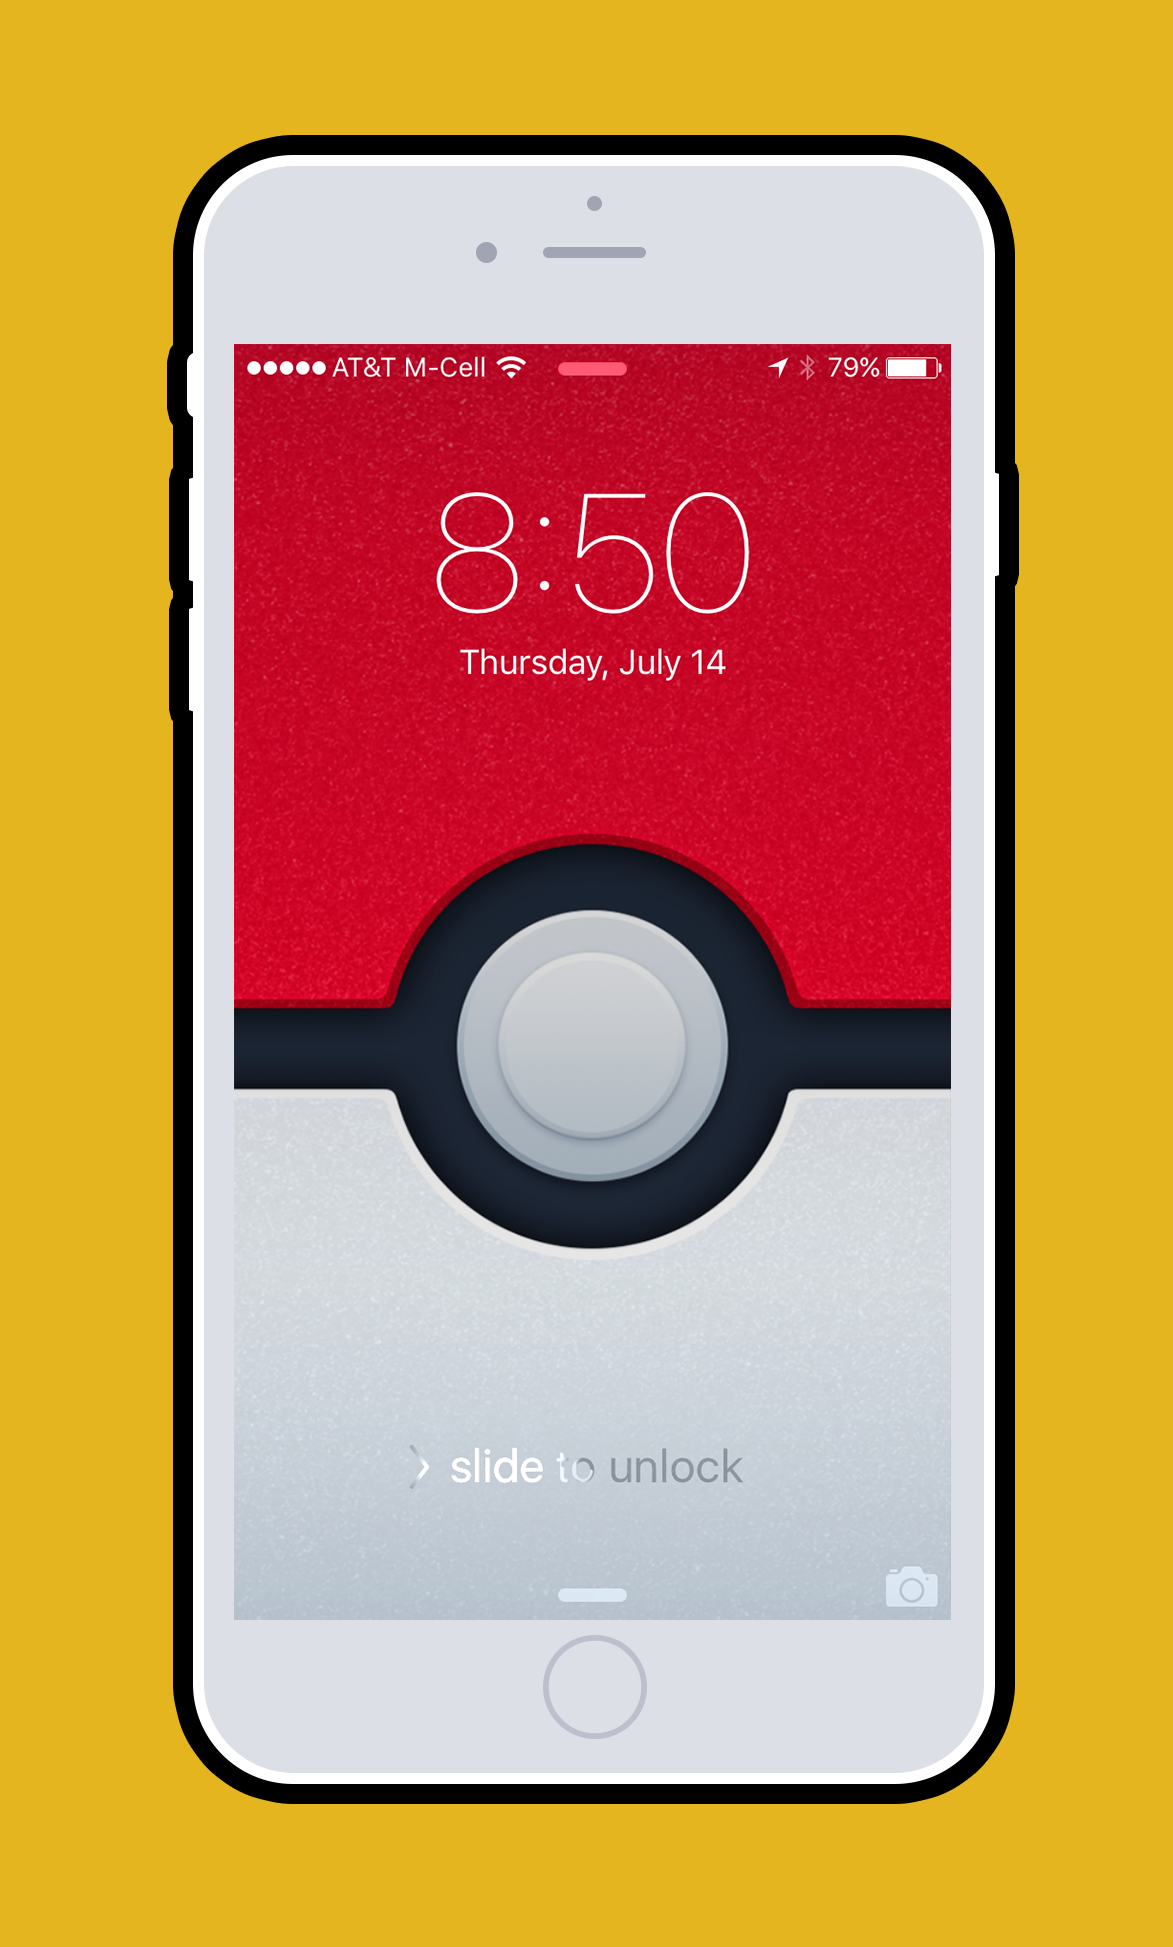 Screen shot of pokéwall wallpaper on an iPhone 6